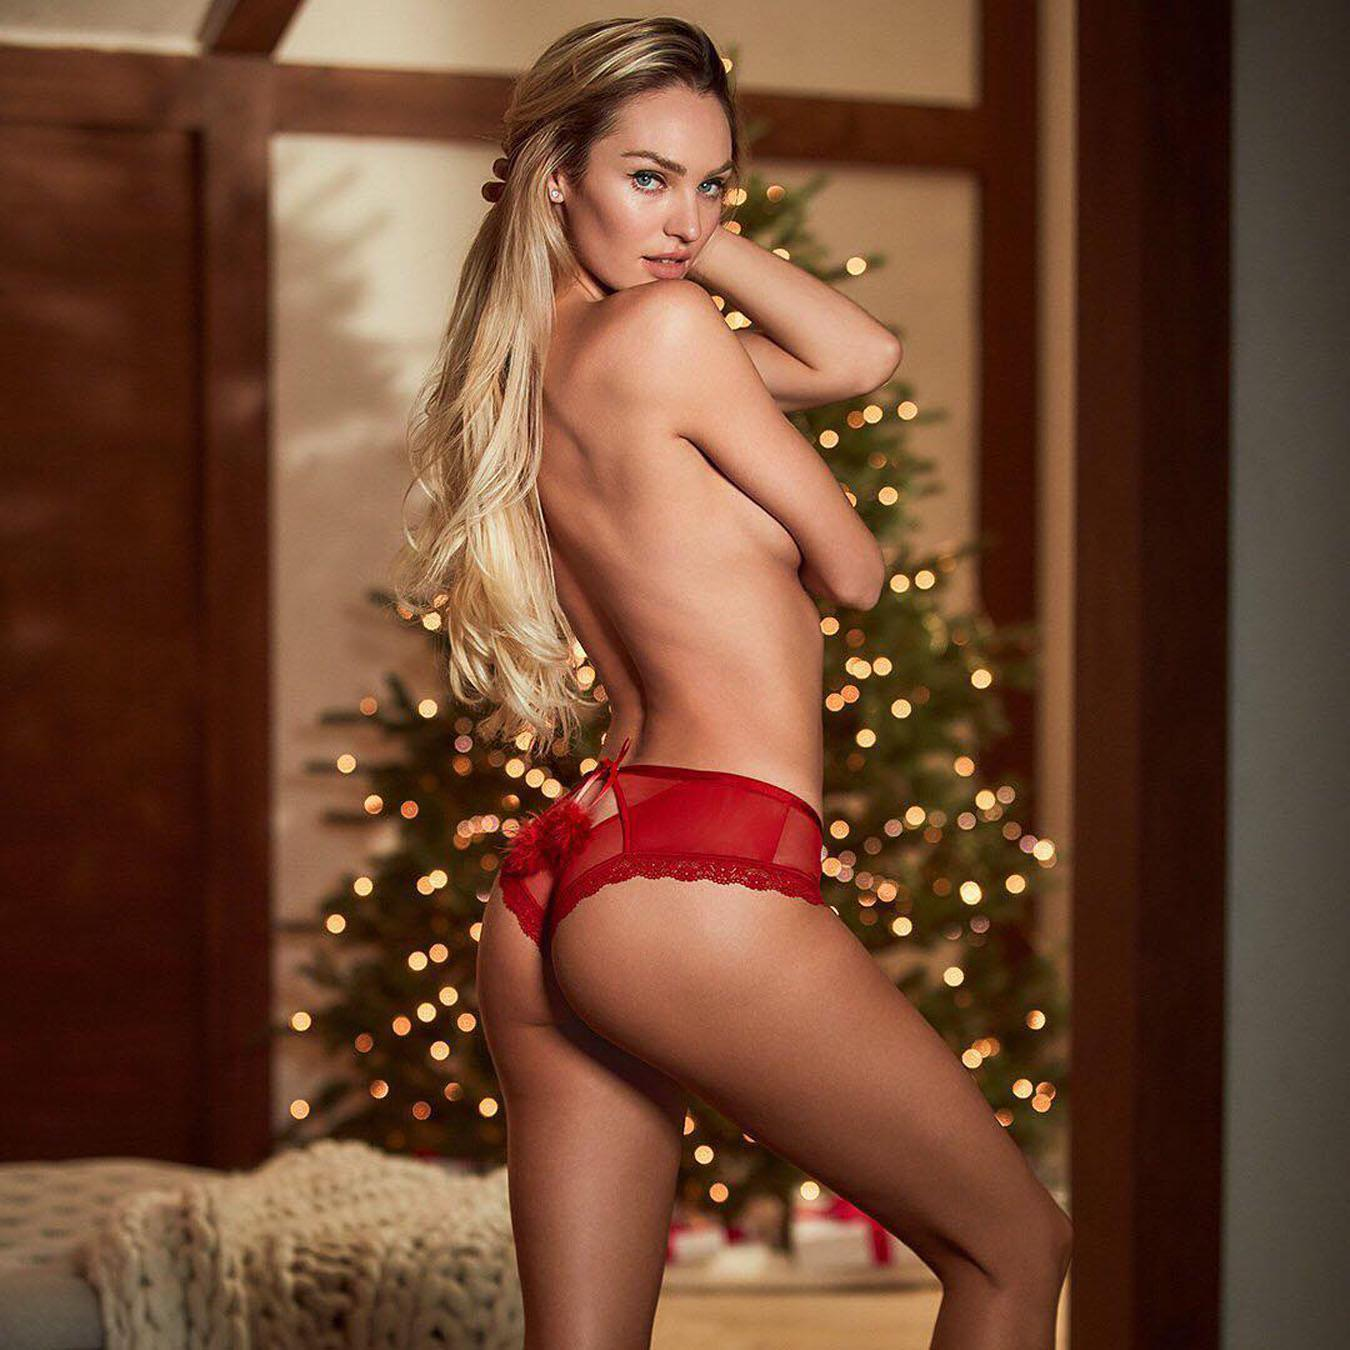 Candice Swanepoel Only Panty - Candice Swanepoel Only Panty